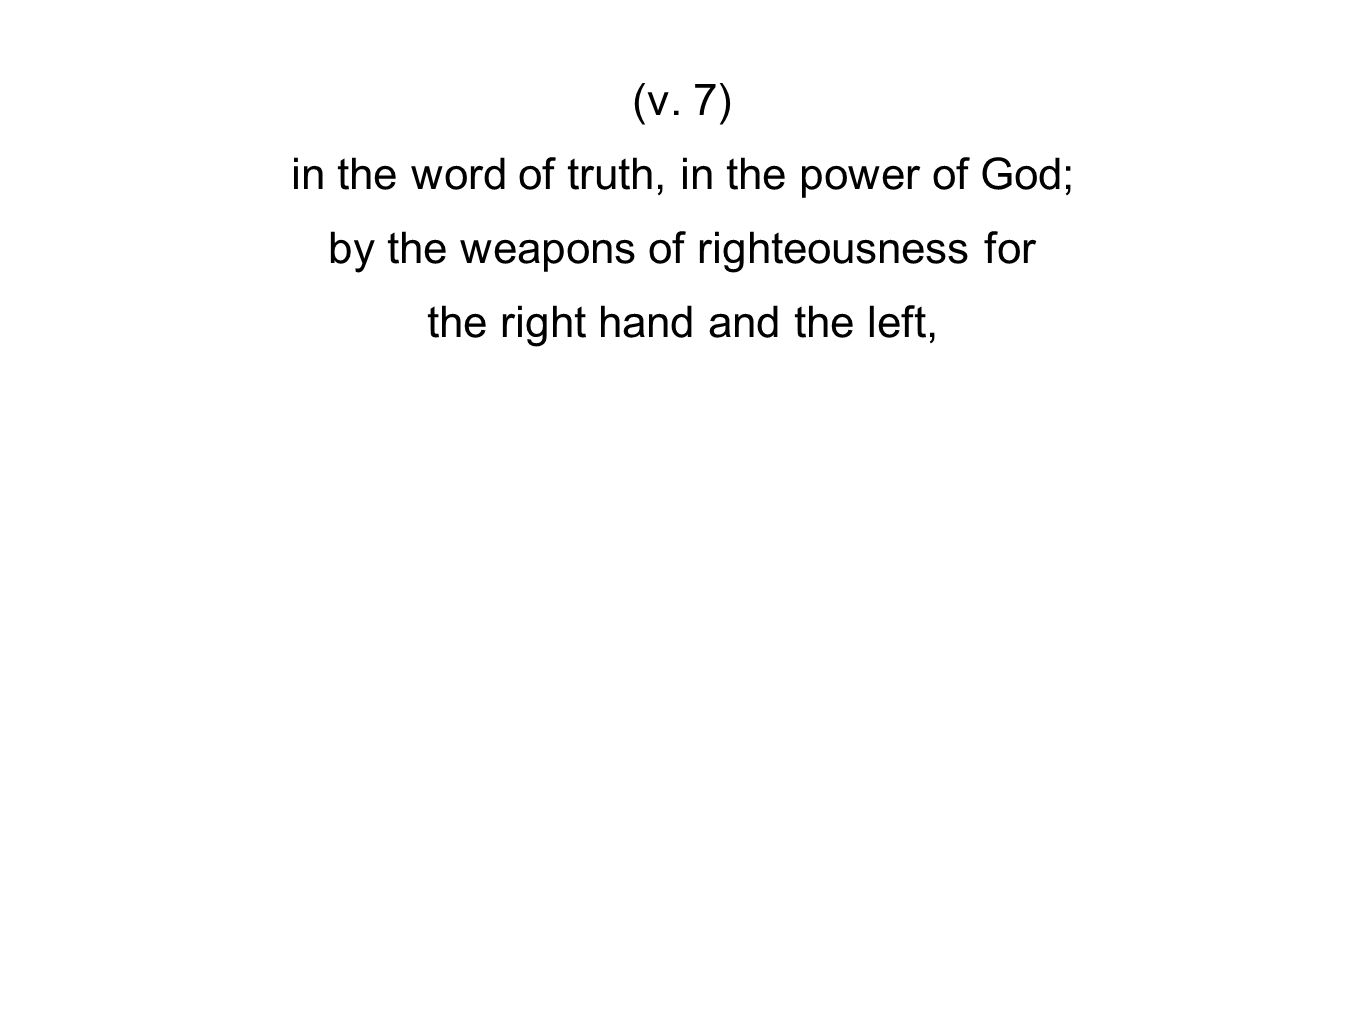 (v. 7) in the word of truth, in the power of God; by the weapons of righteousness for the right hand and the left,